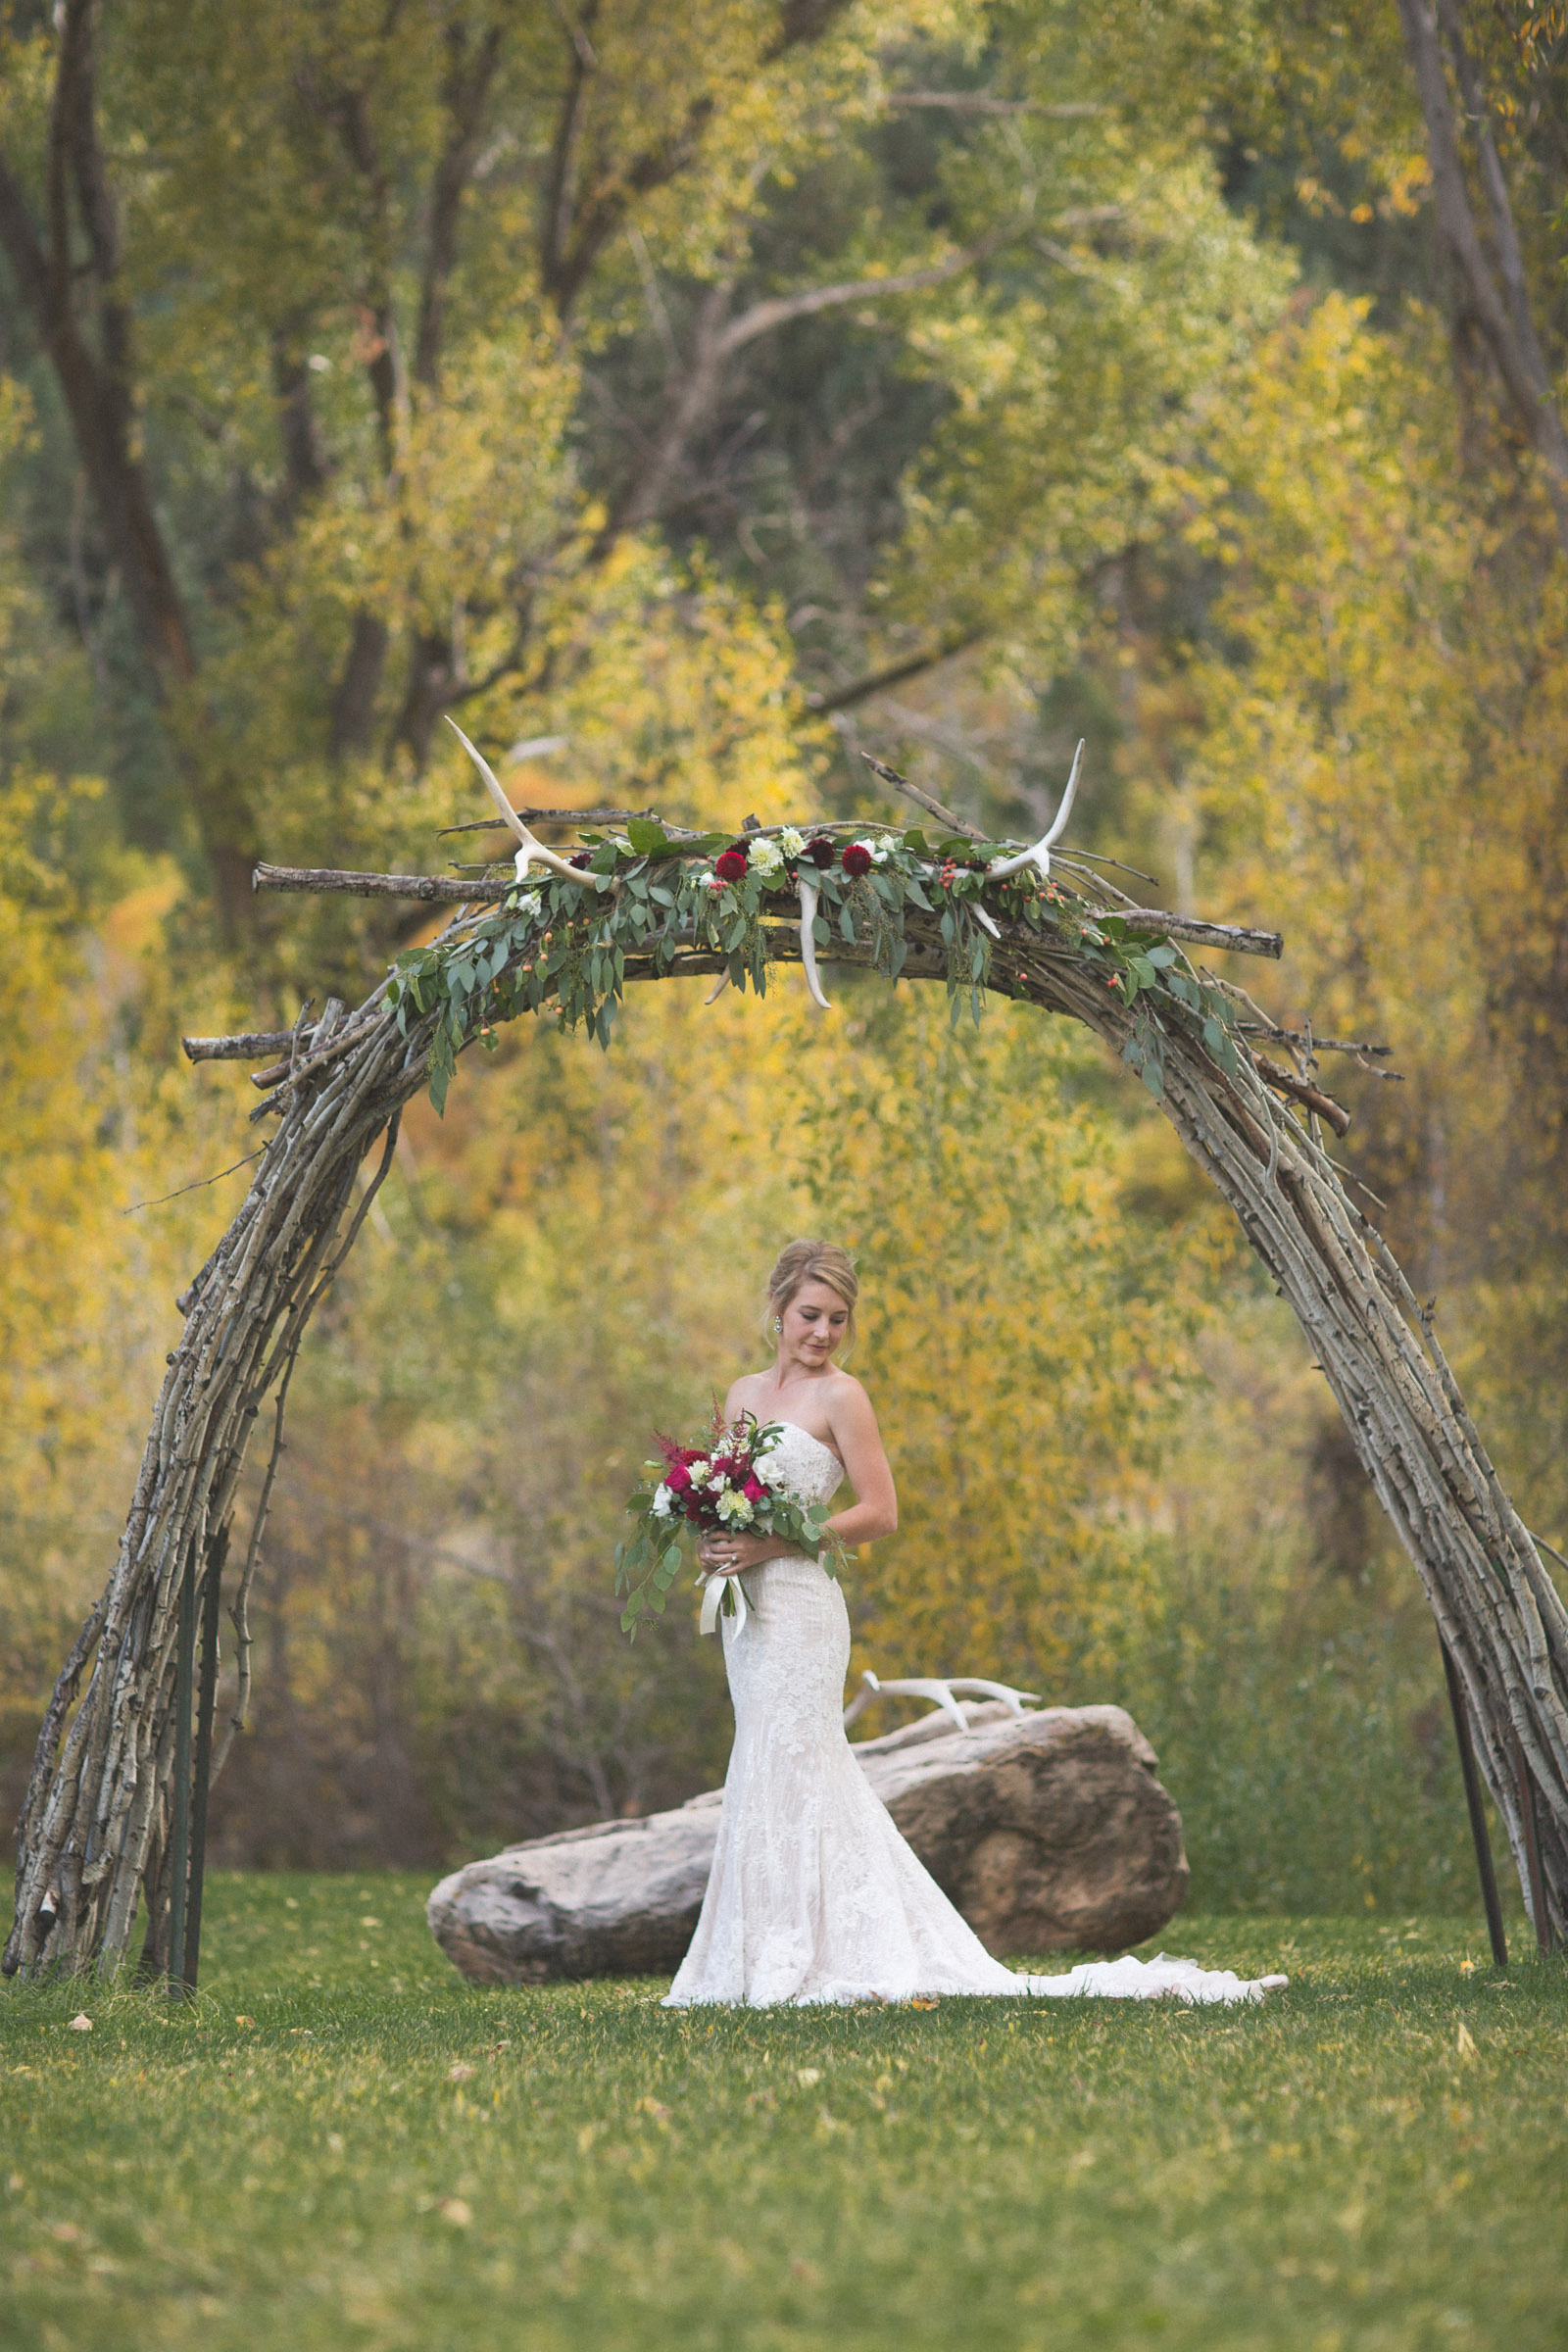 034-beautiful-portrait-of-bride-in-dress-in-nature-and-photojournalistic-photography-in-durango-colorado-elopement-wedding